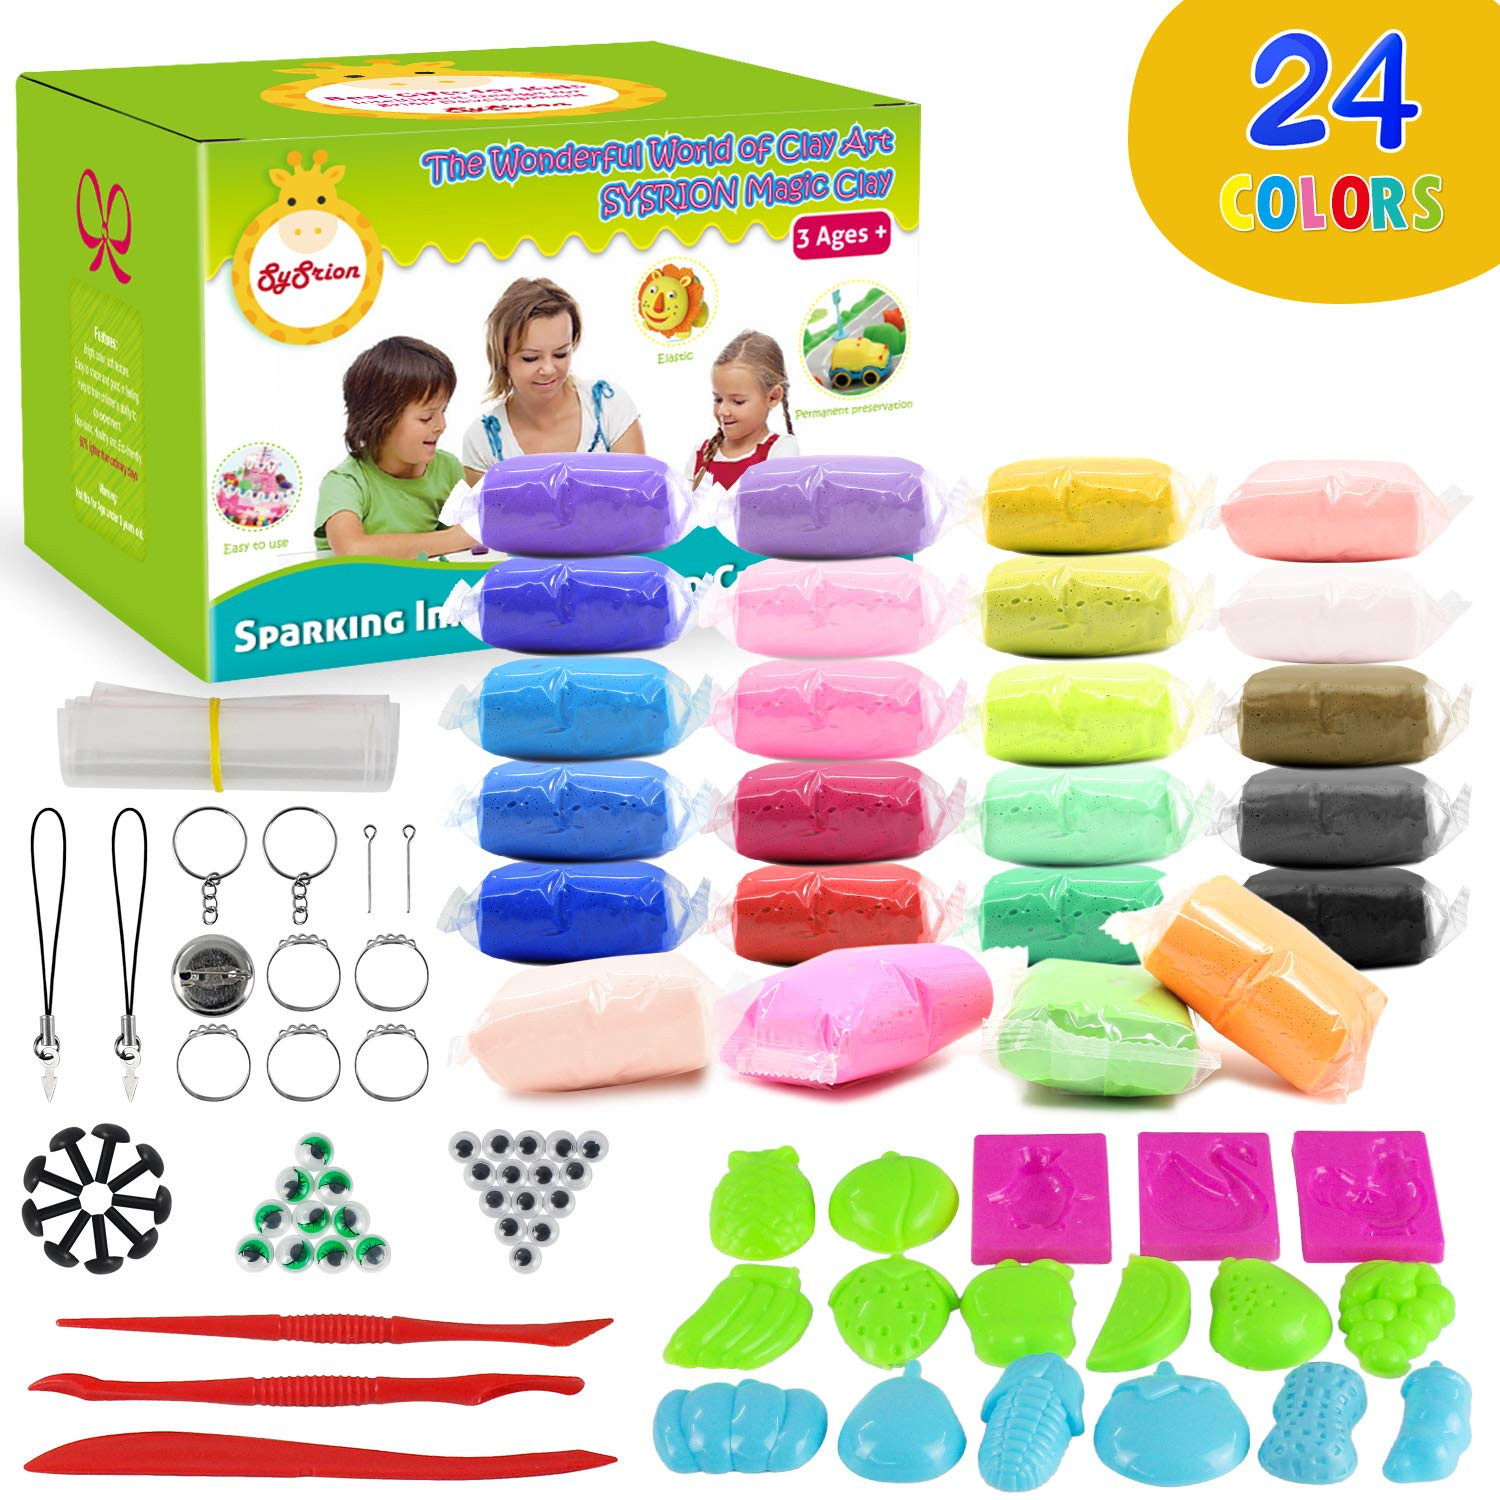 5bd741282 Sysrion Modeling Clay Kit – Super Light Modeling Clay Kits for Kids 24  Colors, Non-Toxic & Non-Sticky Air Dry Clay Set for Kids, Kids Clay Set,  Creative DIY ...